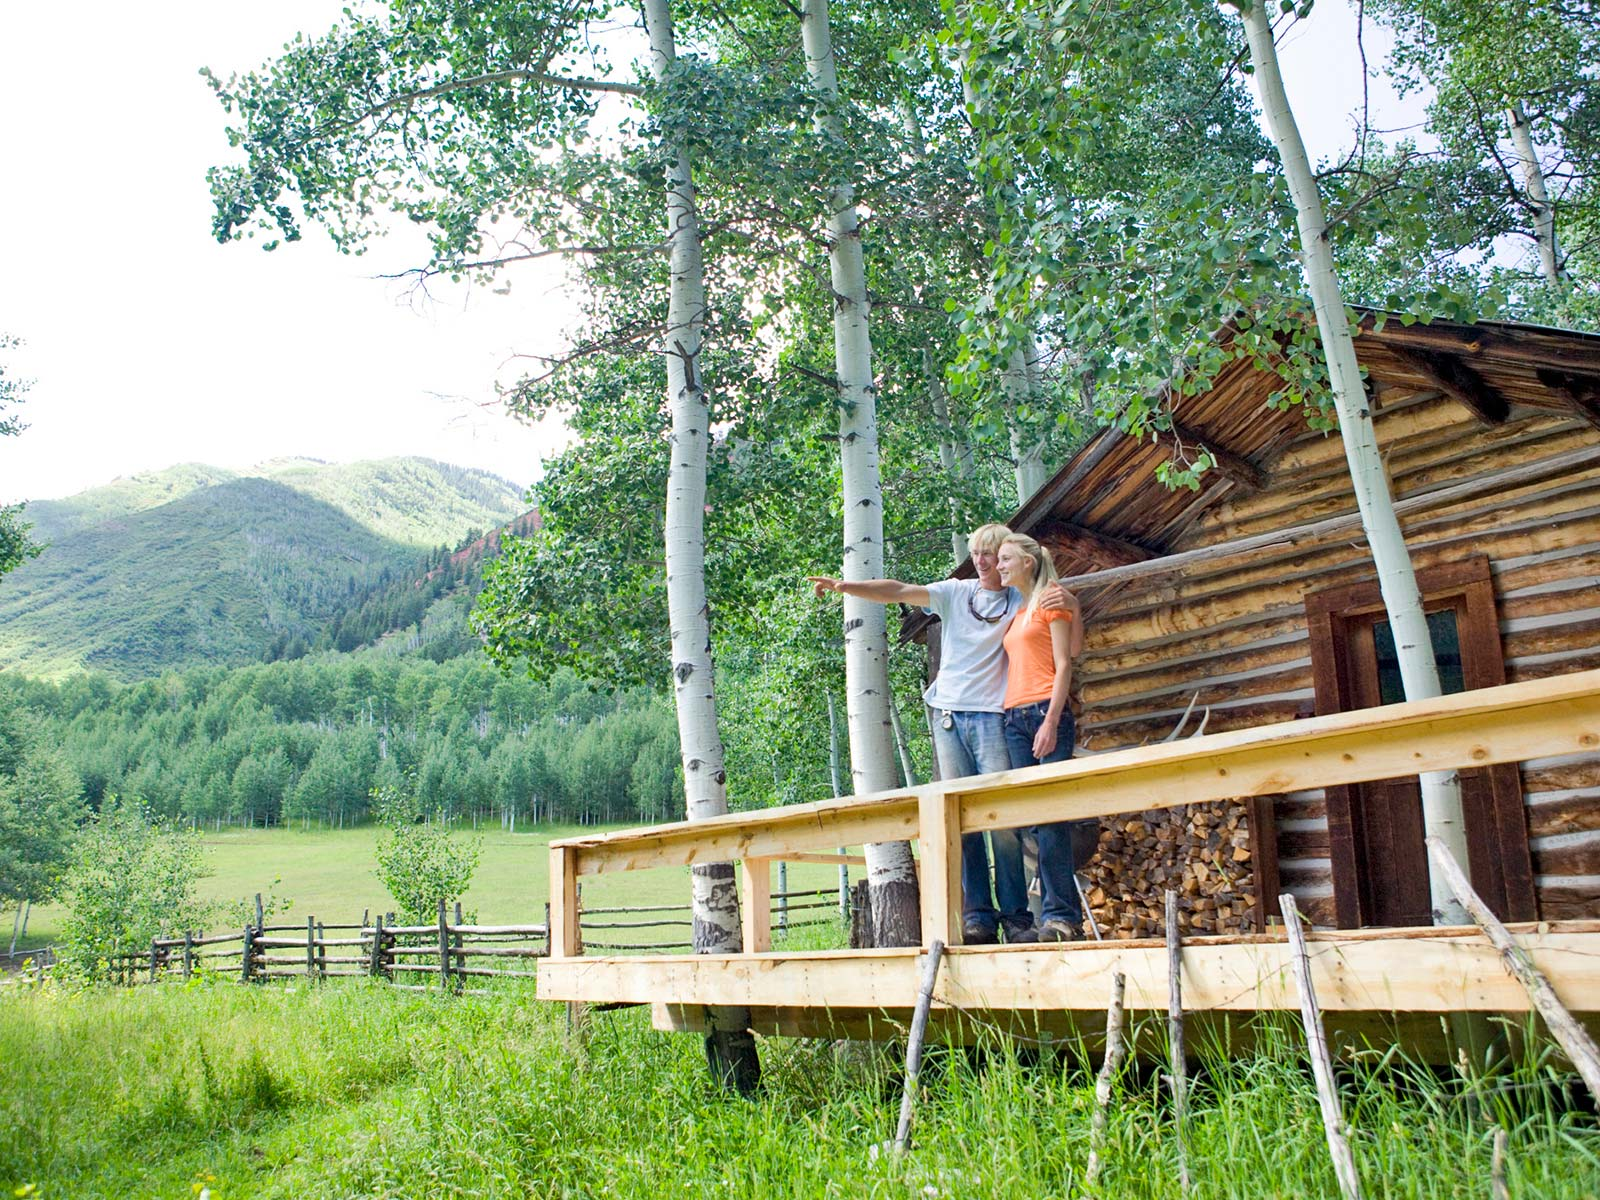 Couple standing on the porch of their log cabin viewing mountain scenery